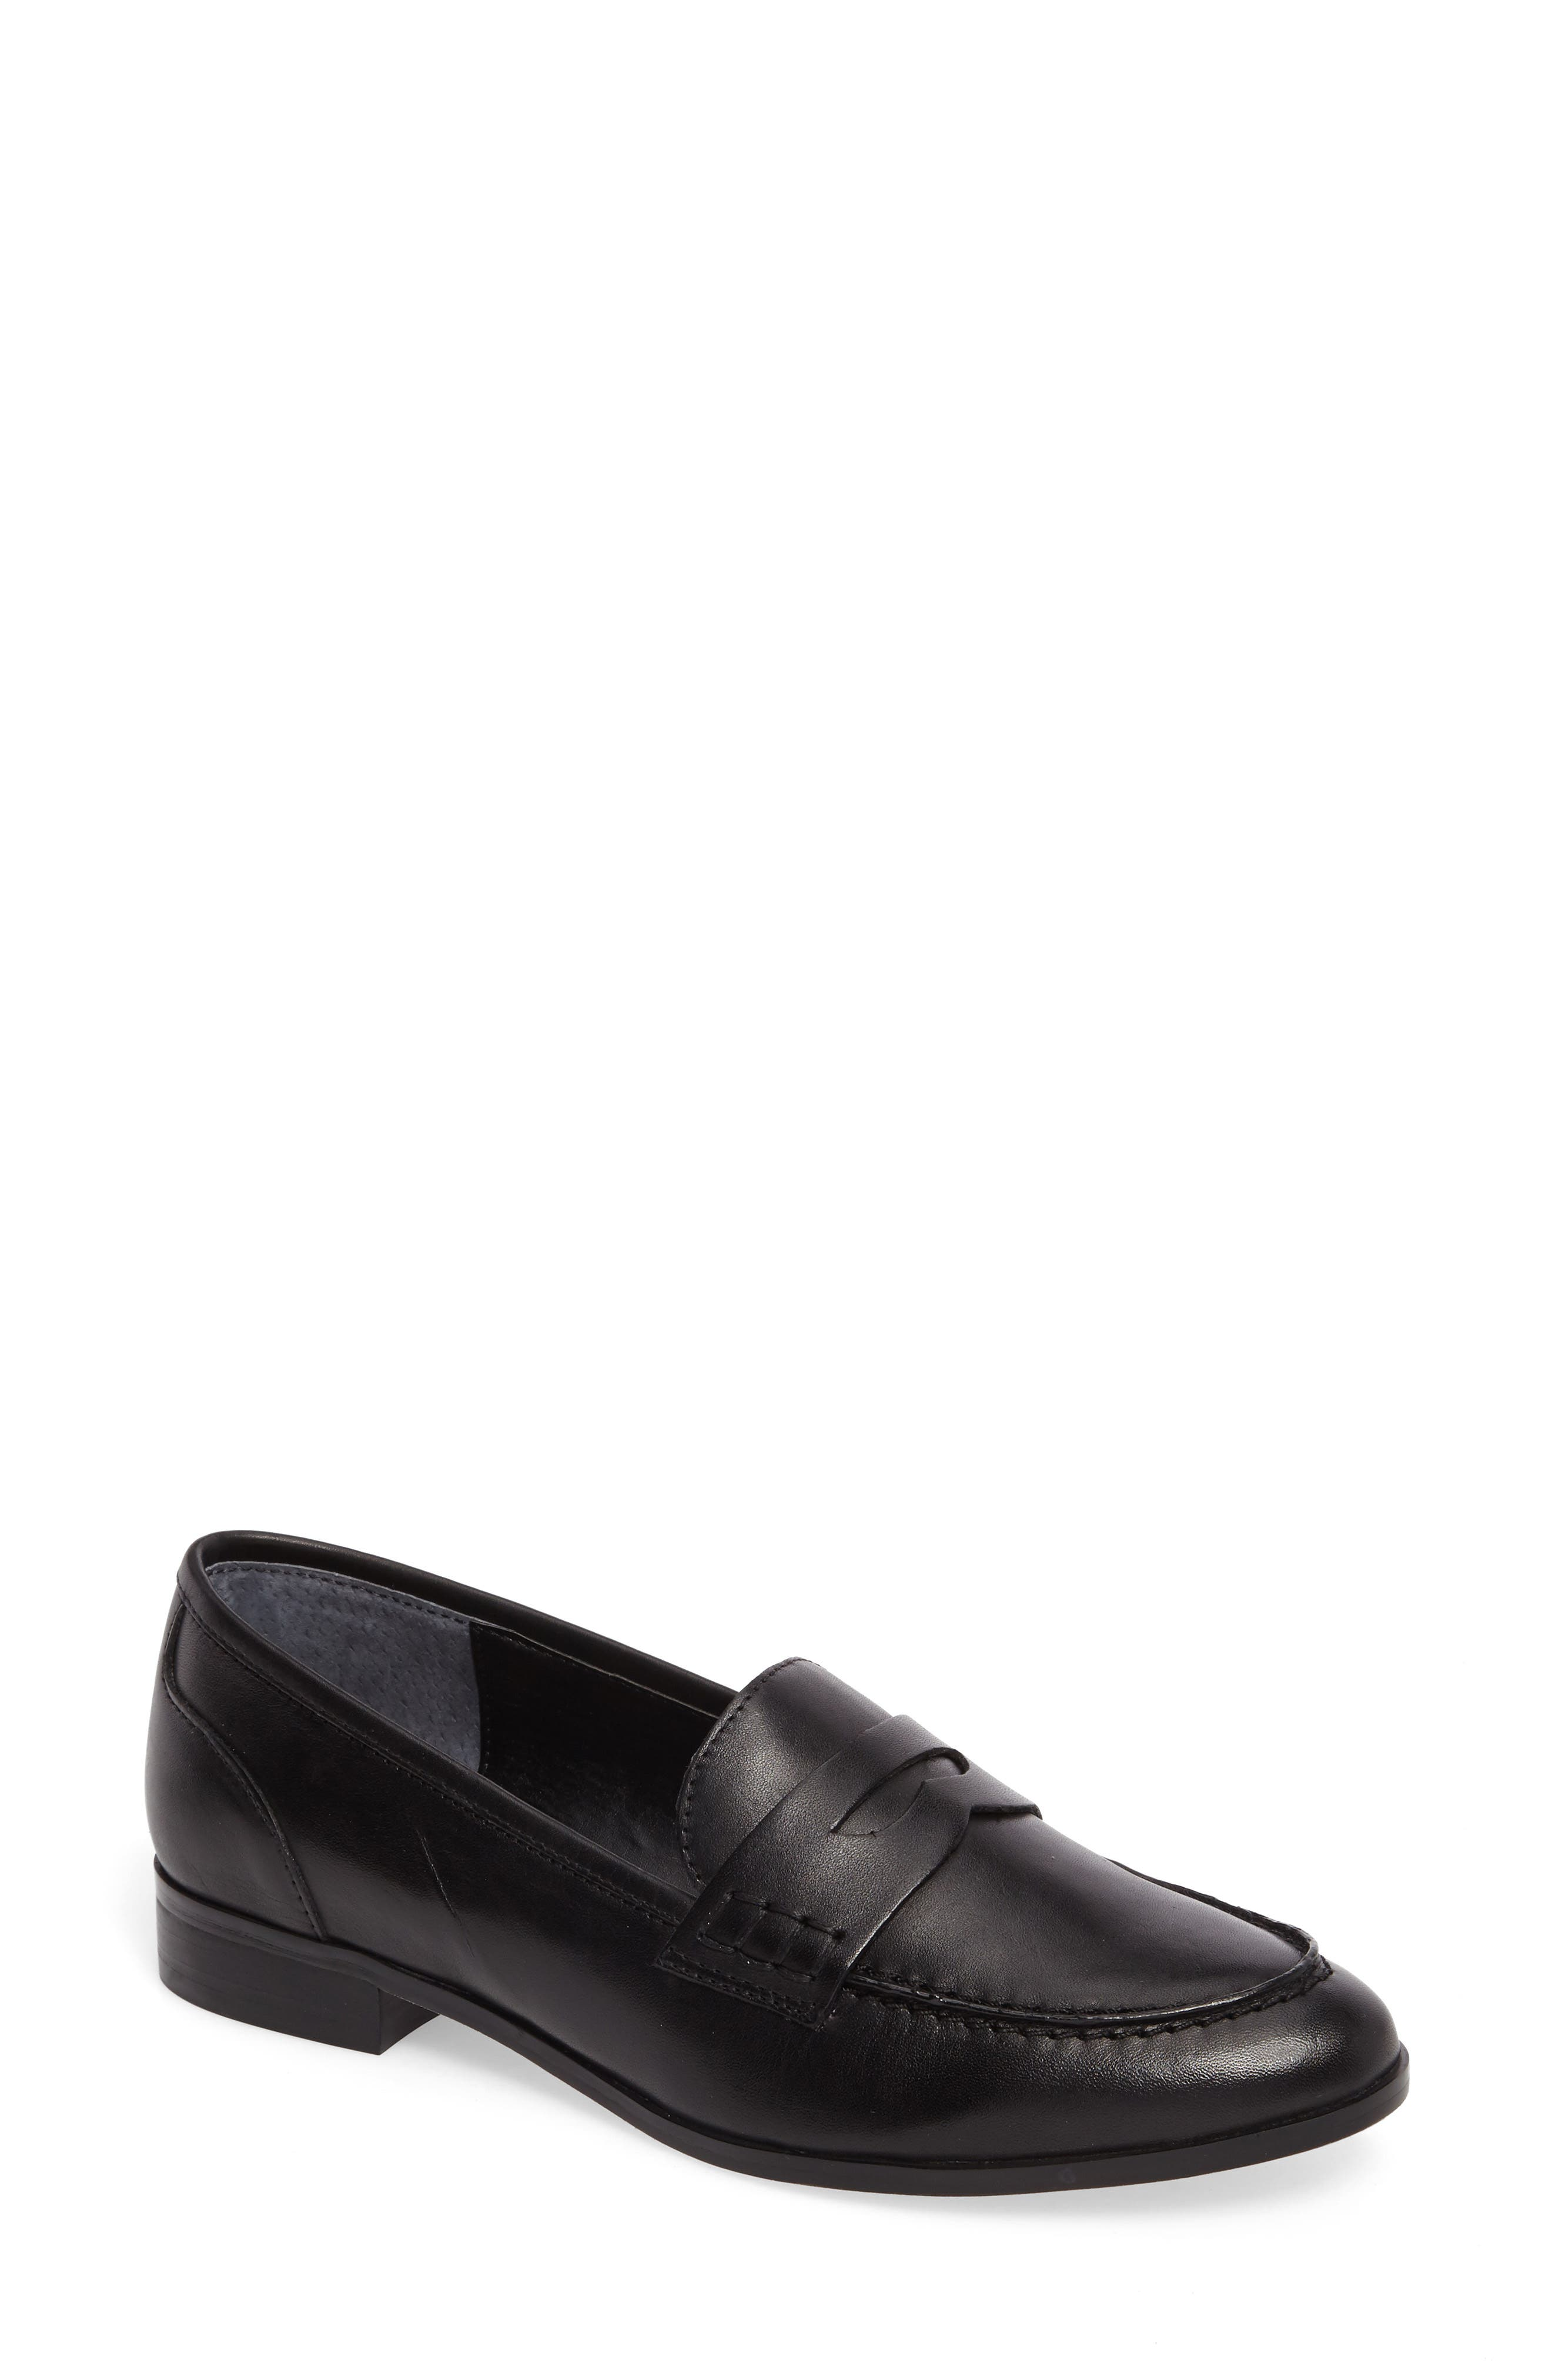 Georgie Penny Loafer,                         Main,                         color, Black Leather